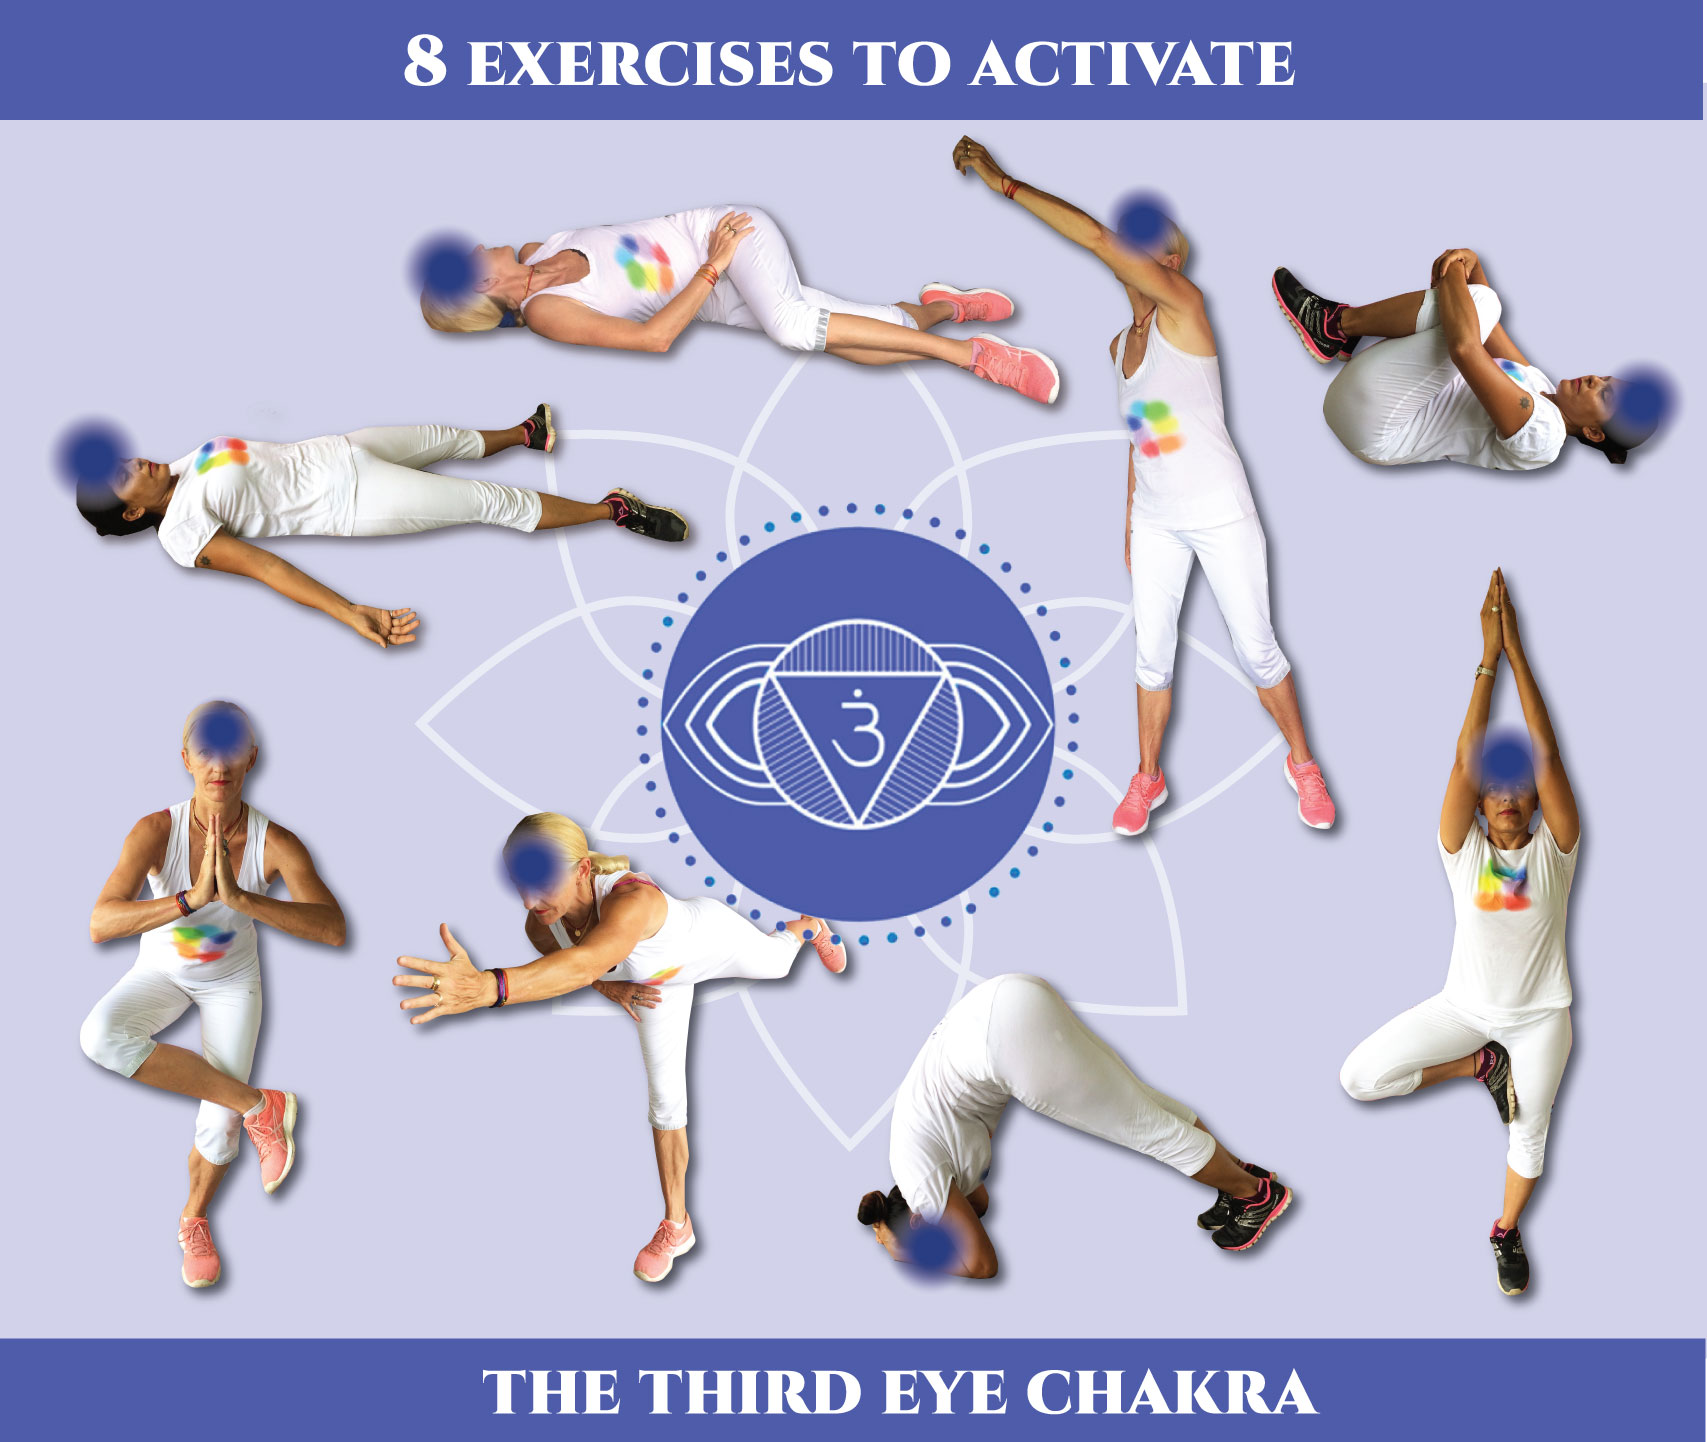 8 exercises to activate the third eye chakra